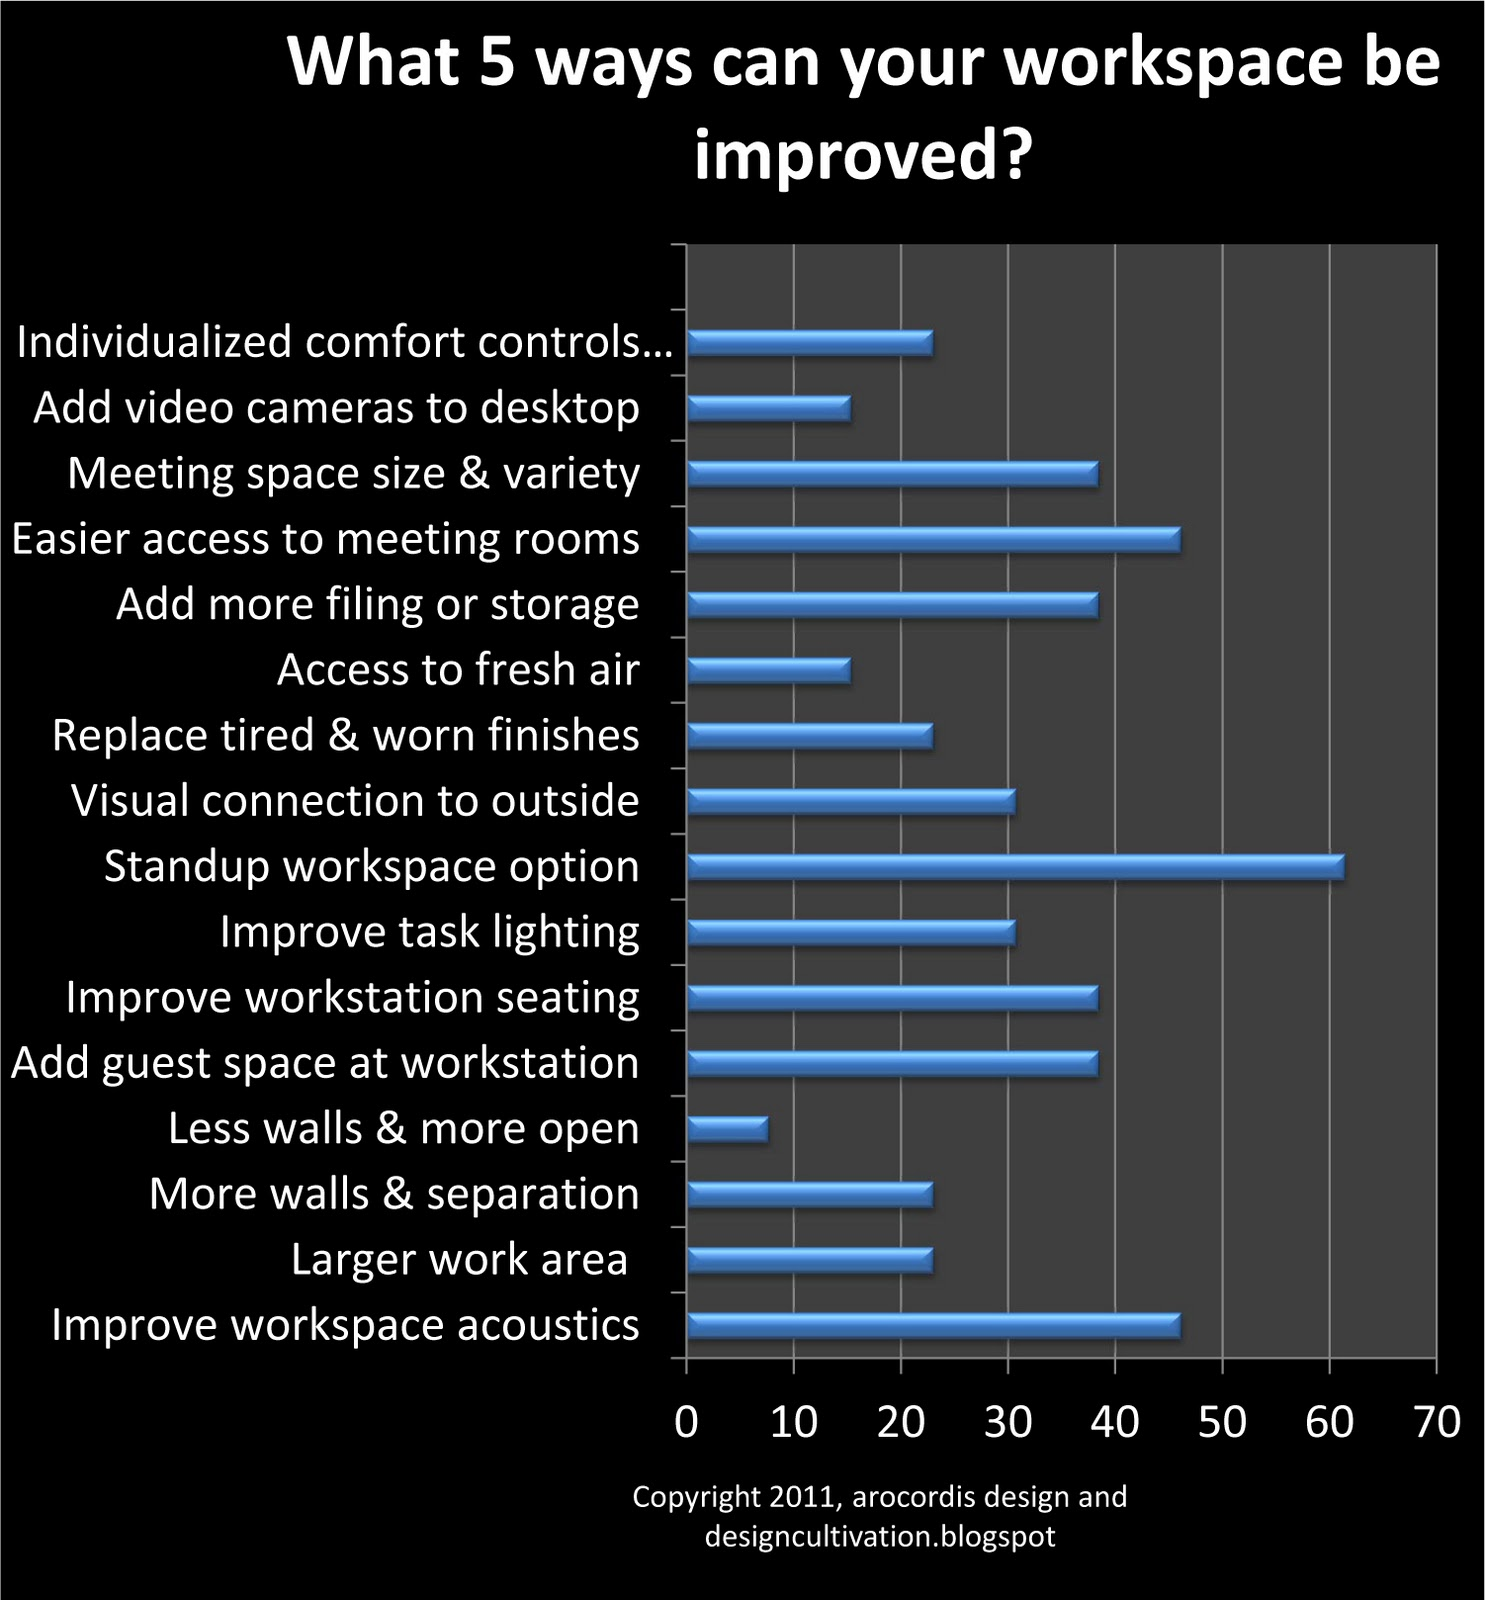 designcultivation Strategic Workplace Design Survey Results Part